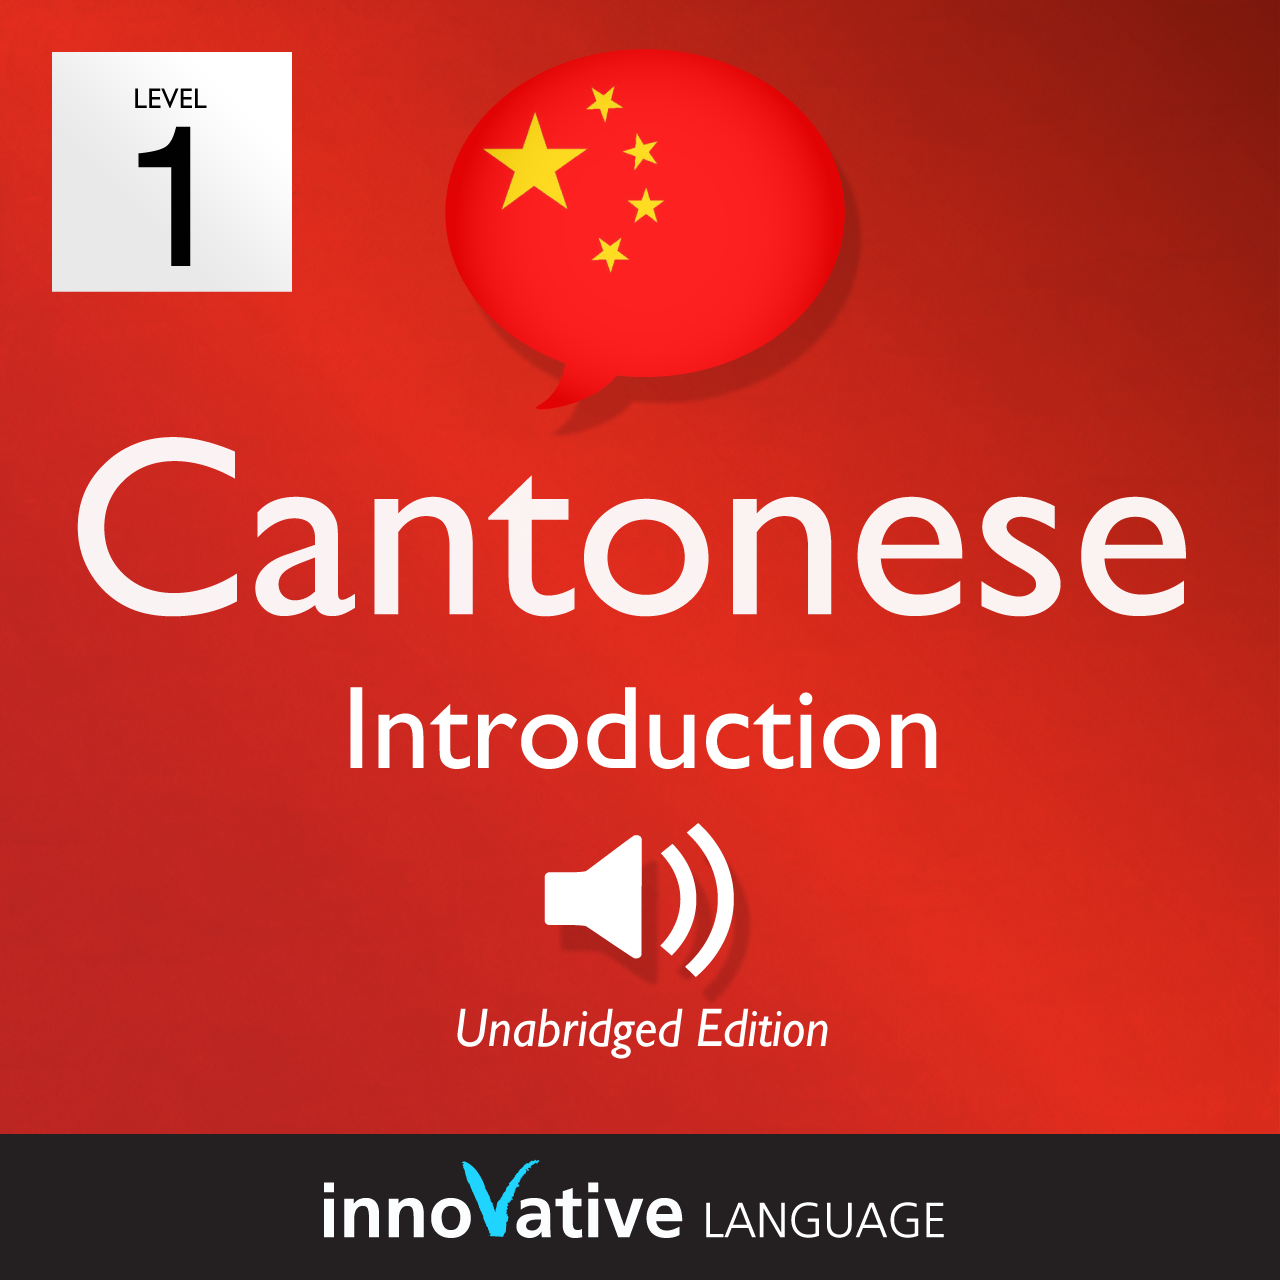 [Audiobook] Learn Cantonese - Level 1: Introduction to Cantonese, Volume 1